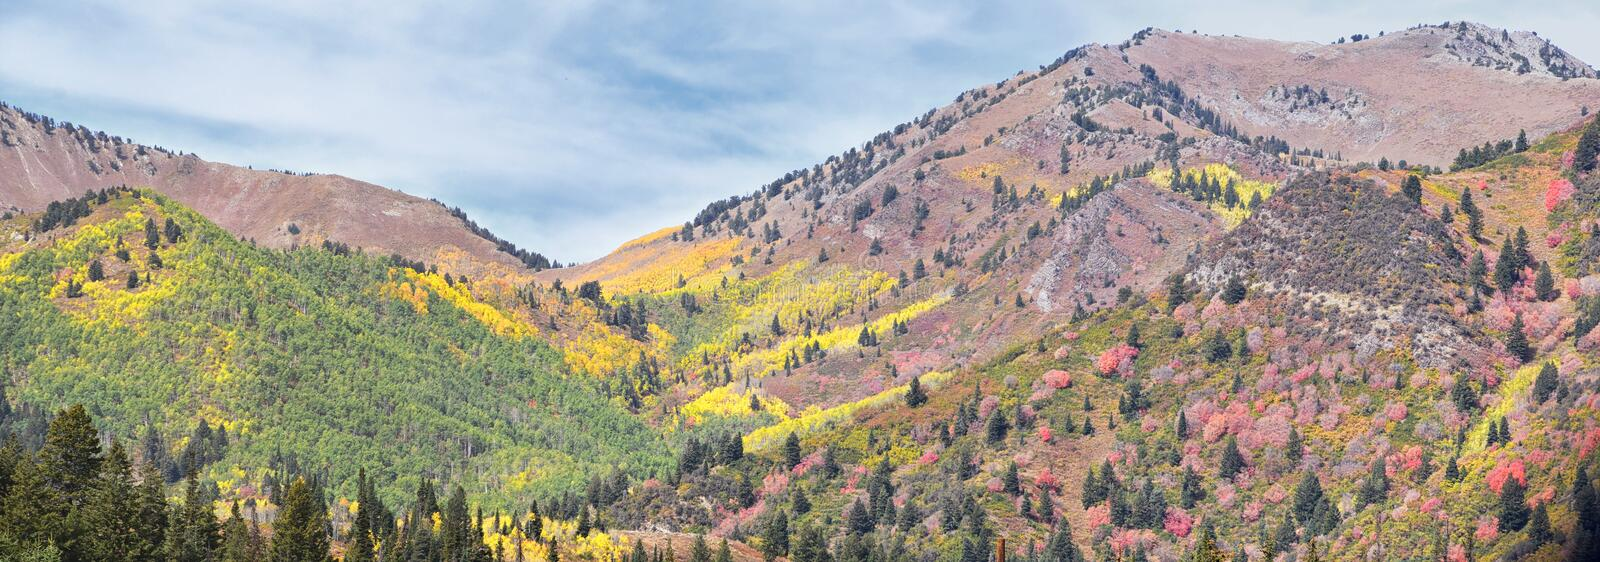 Guardsman Pass views of Panoramic Landscape of the Pass from the Brighton side by Midway and Heber Valley along the Wasatch Front. Rocky Mountains, Fall Leaf royalty free stock photo